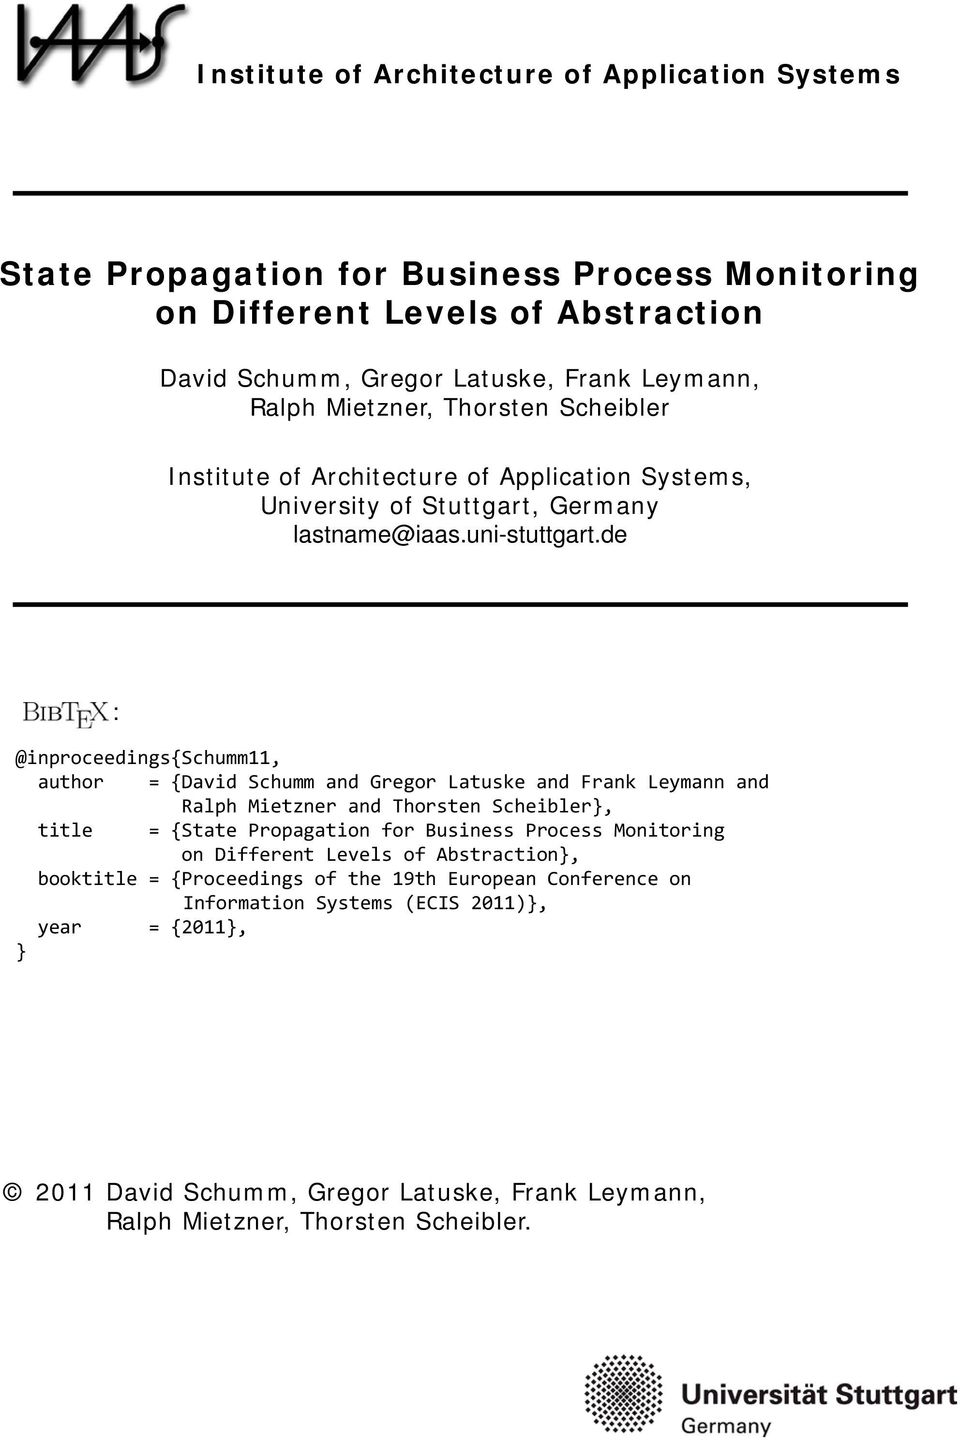 de : @inproceedings{schumm11, author = {David Schumm and Gregor Latuske and Frank Leymann and Ralph Mietzner and Thorsten Scheibler}, title = {State Propagation for Business Process